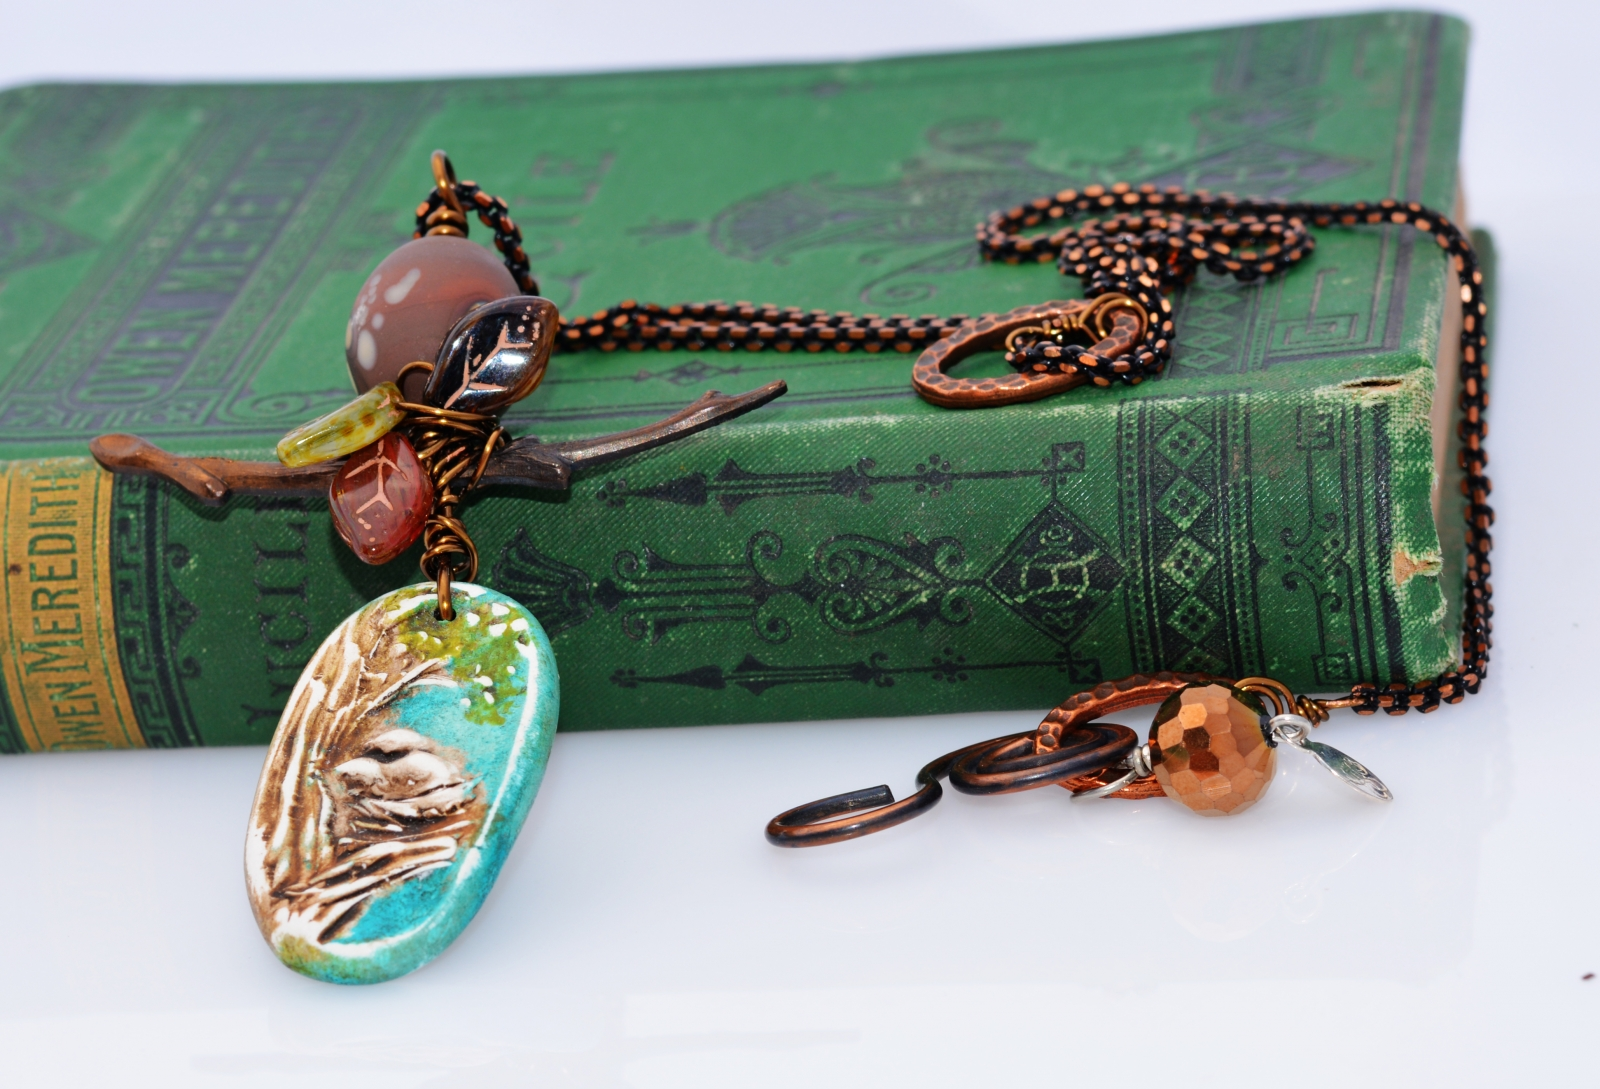 Bird's Nest Artisan Pendant by Honey from the Bee